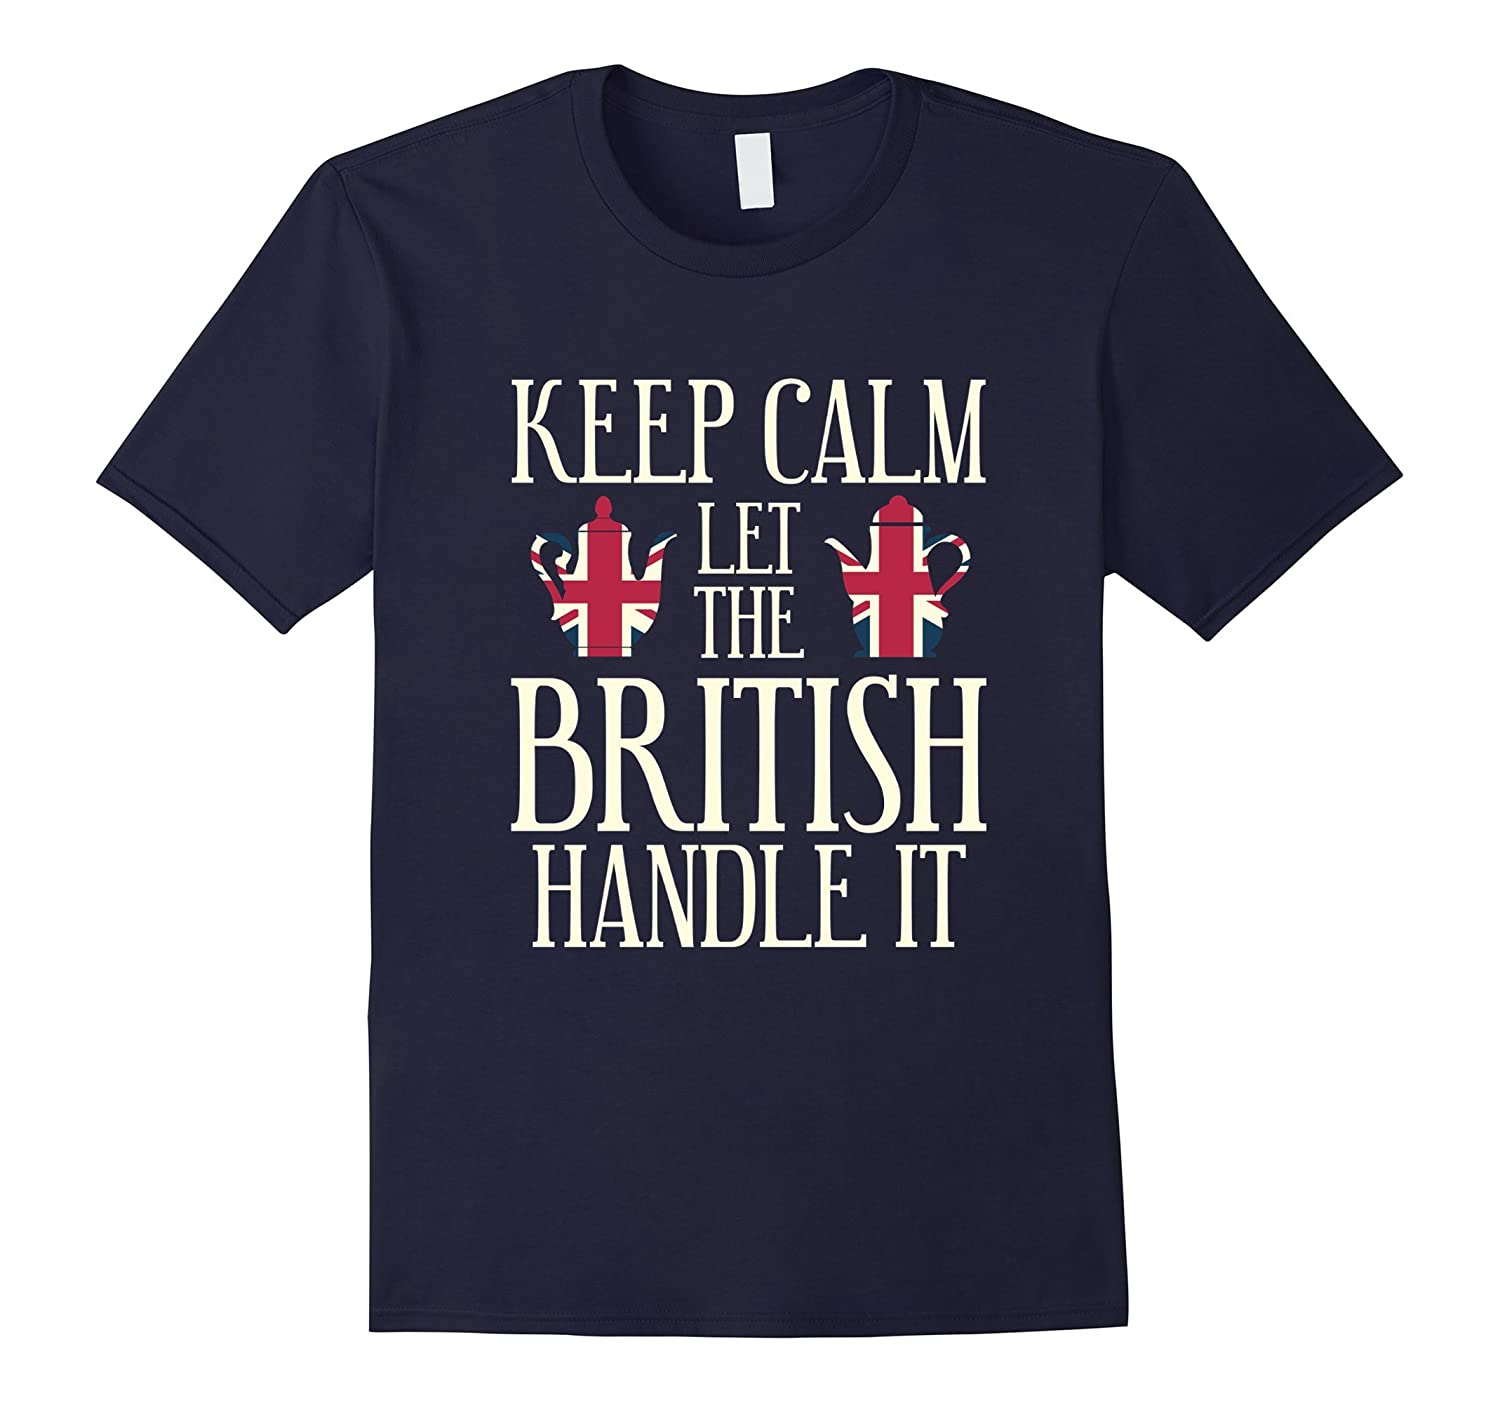 Funny Keep Calm Let The British Handle It T-shirt UK Gift